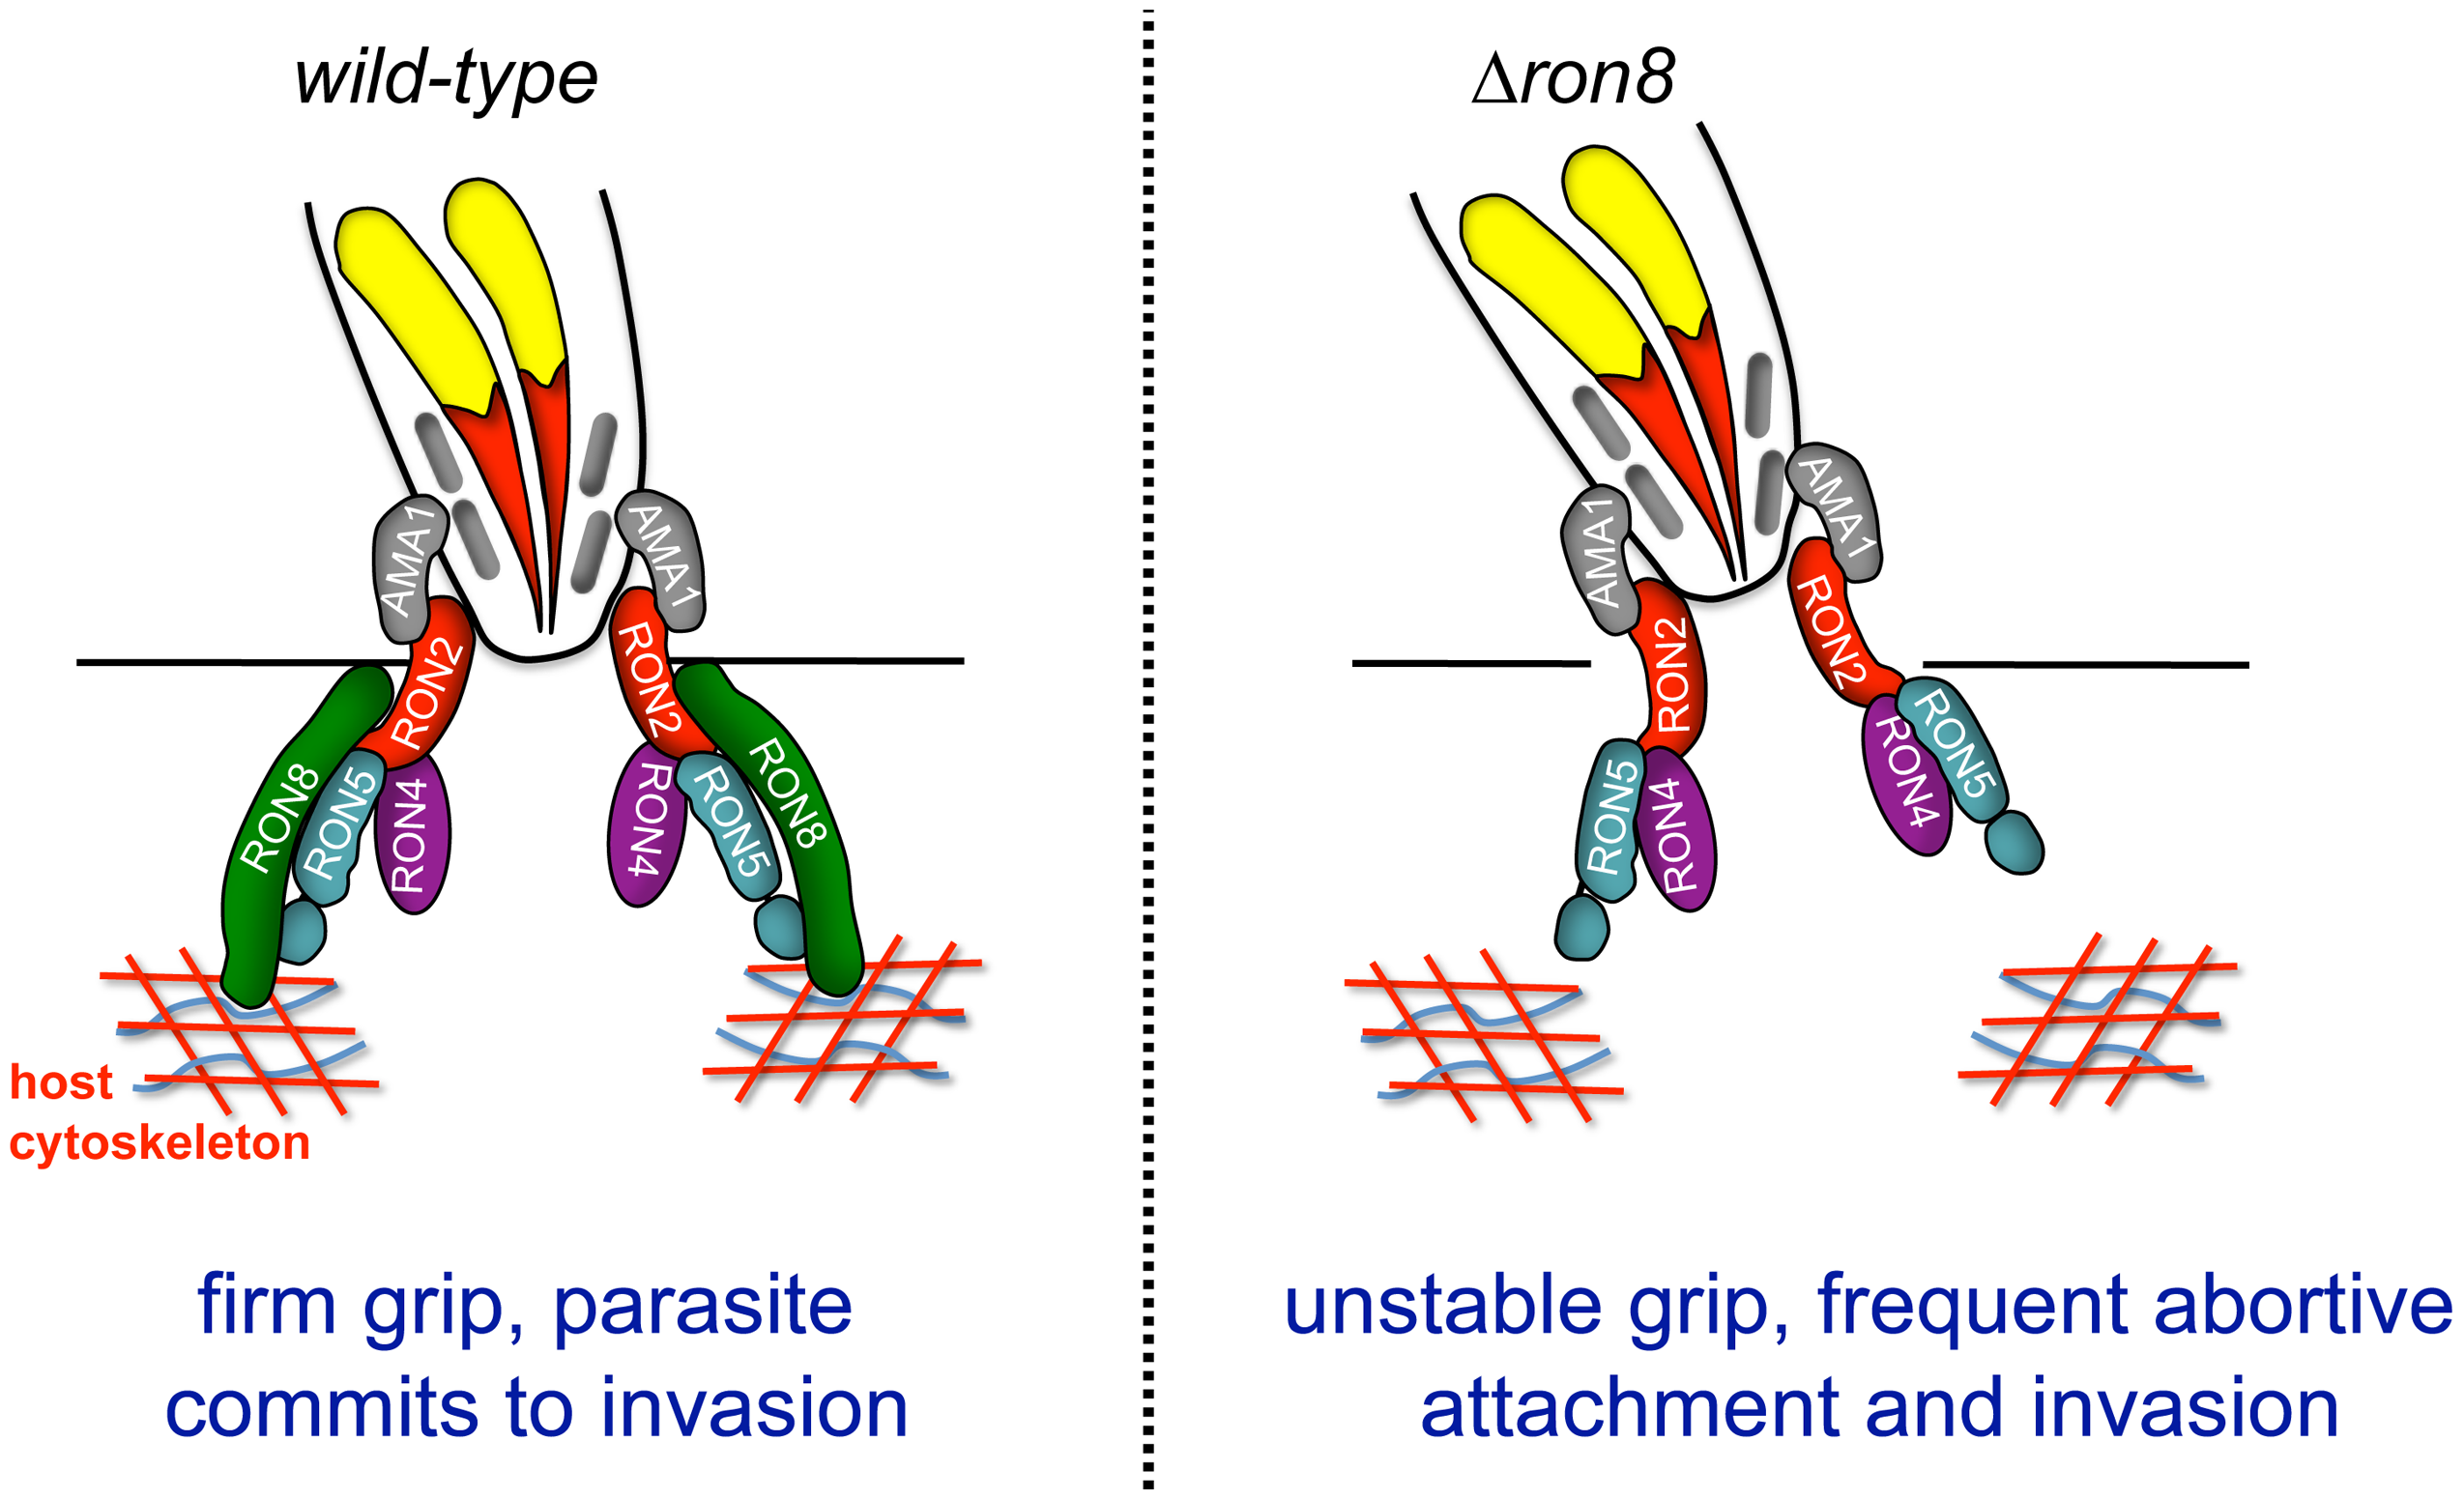 Model of the <i>Toxoplasma</i> moving junction in wildtype and Δ<i>ron8</i> parasites.